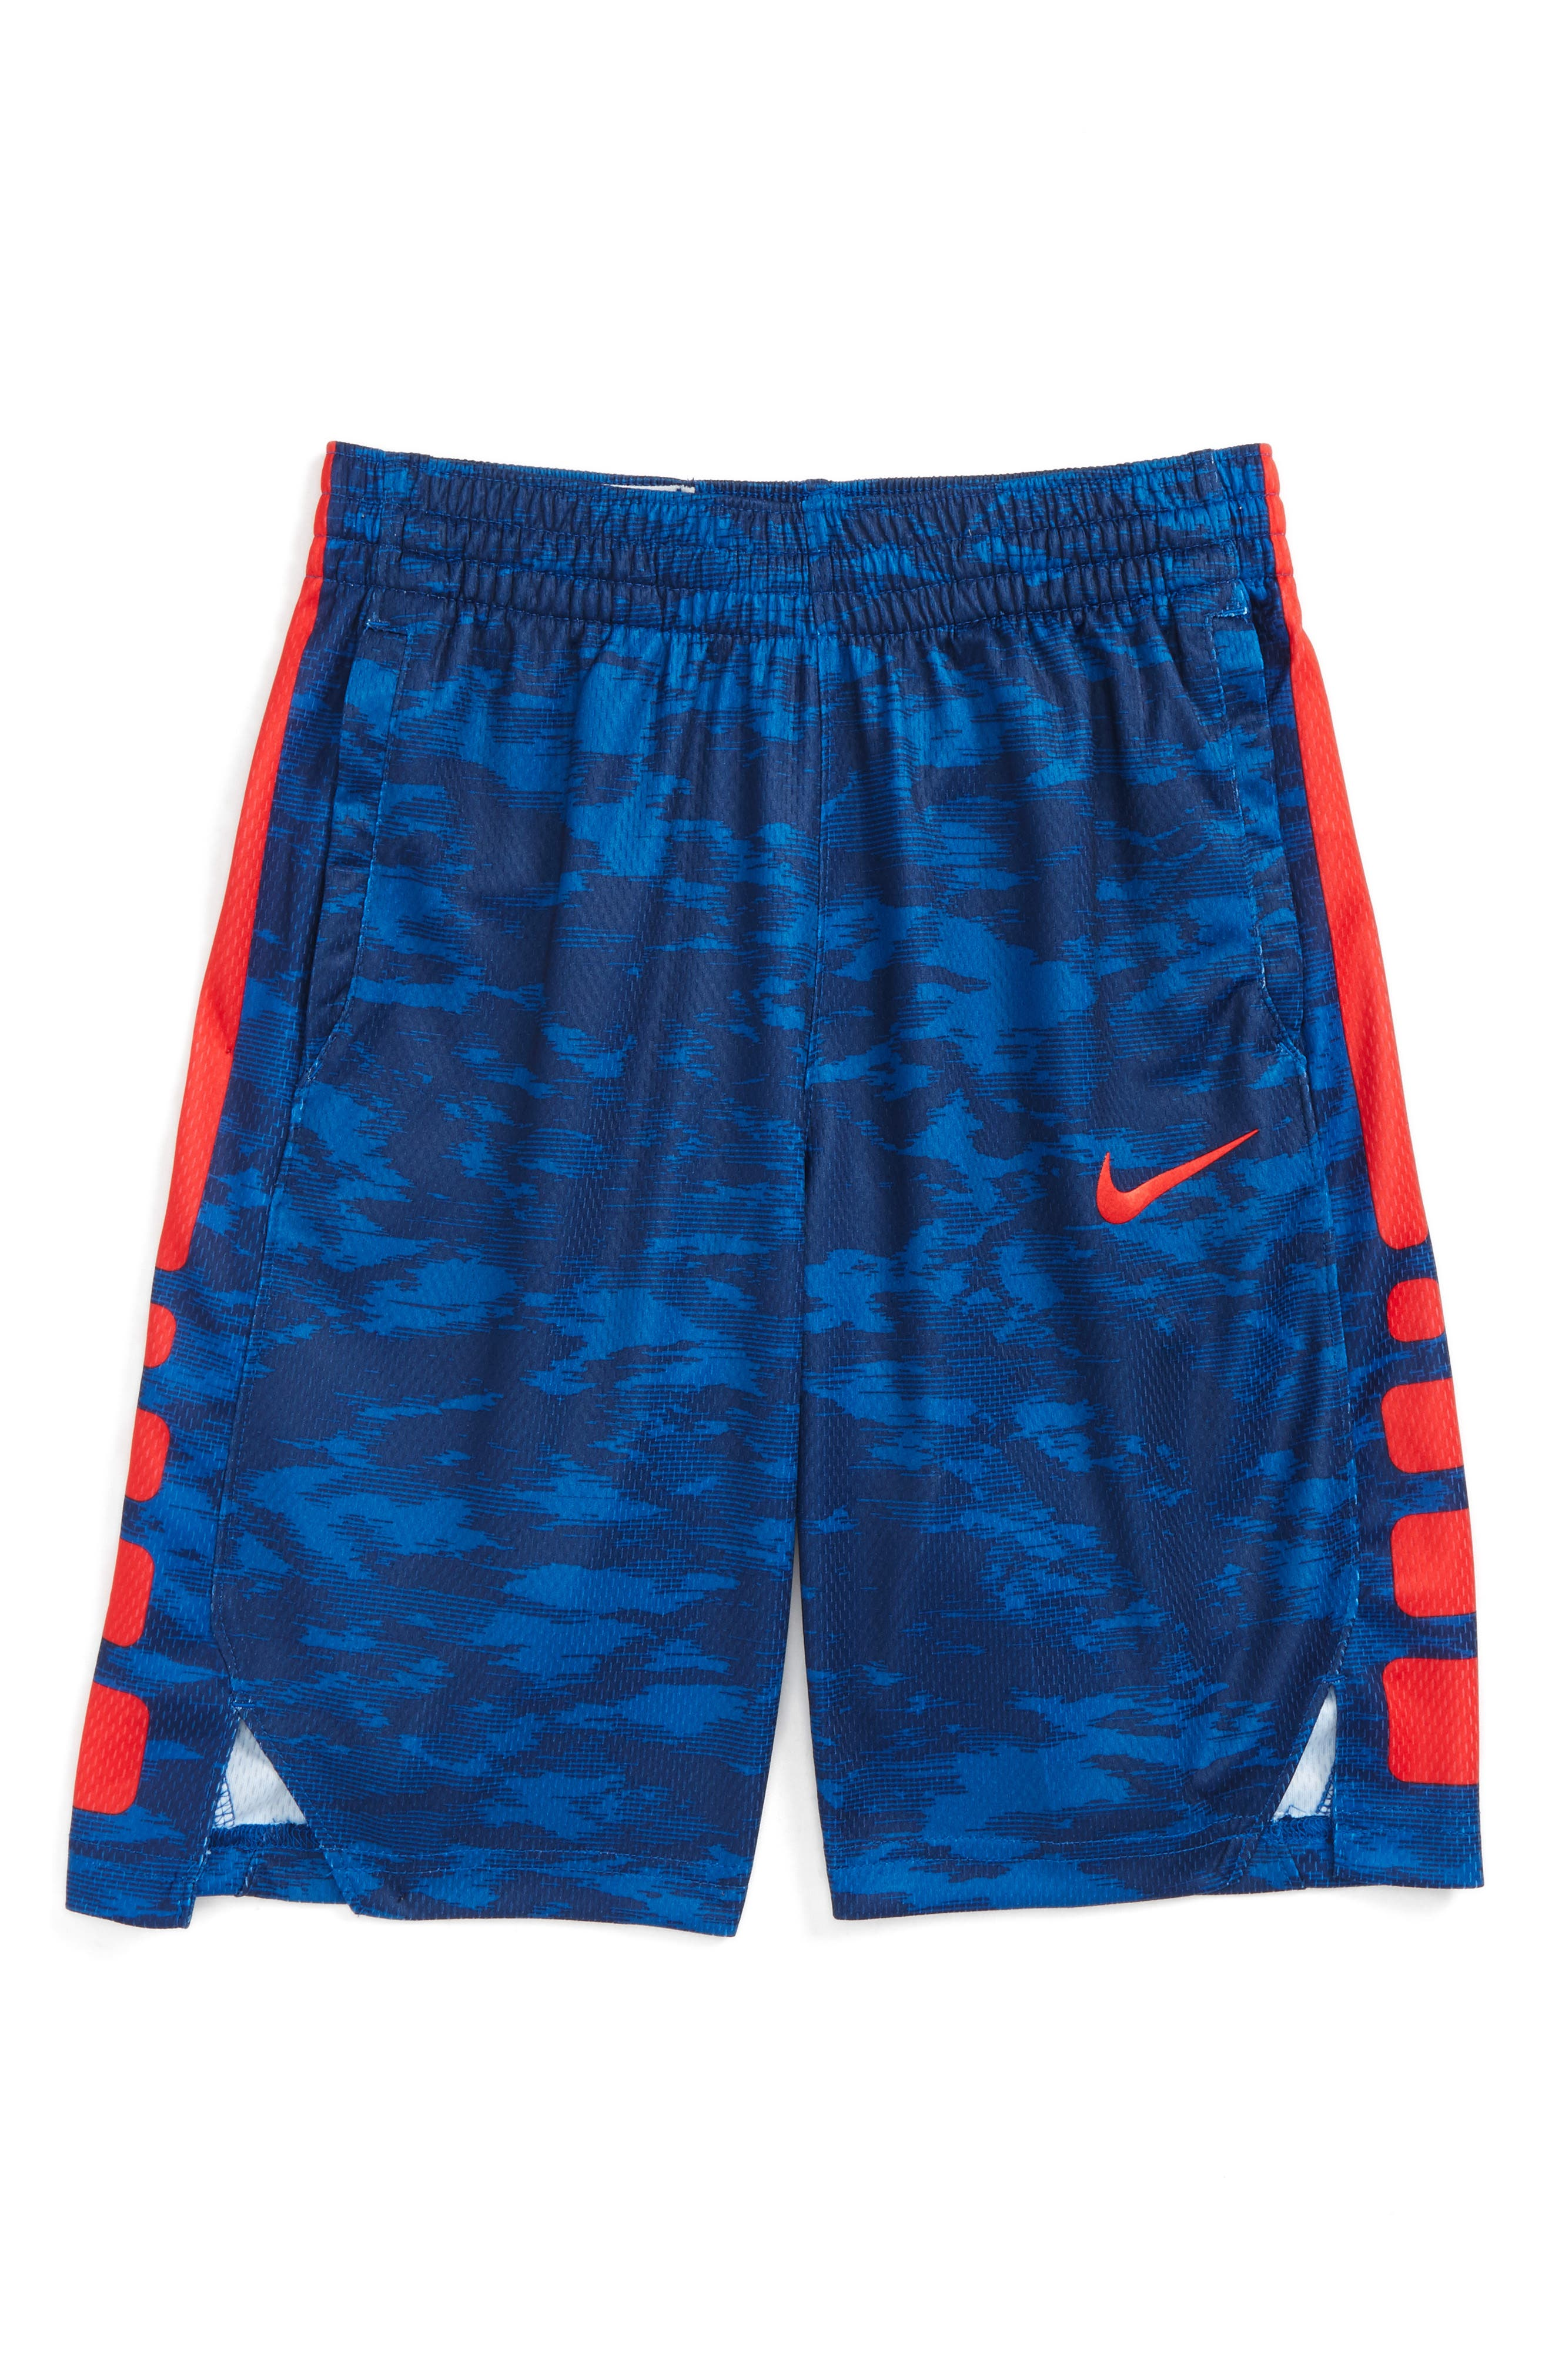 Dry Elite Basketball Shorts,                         Main,                         color, 429